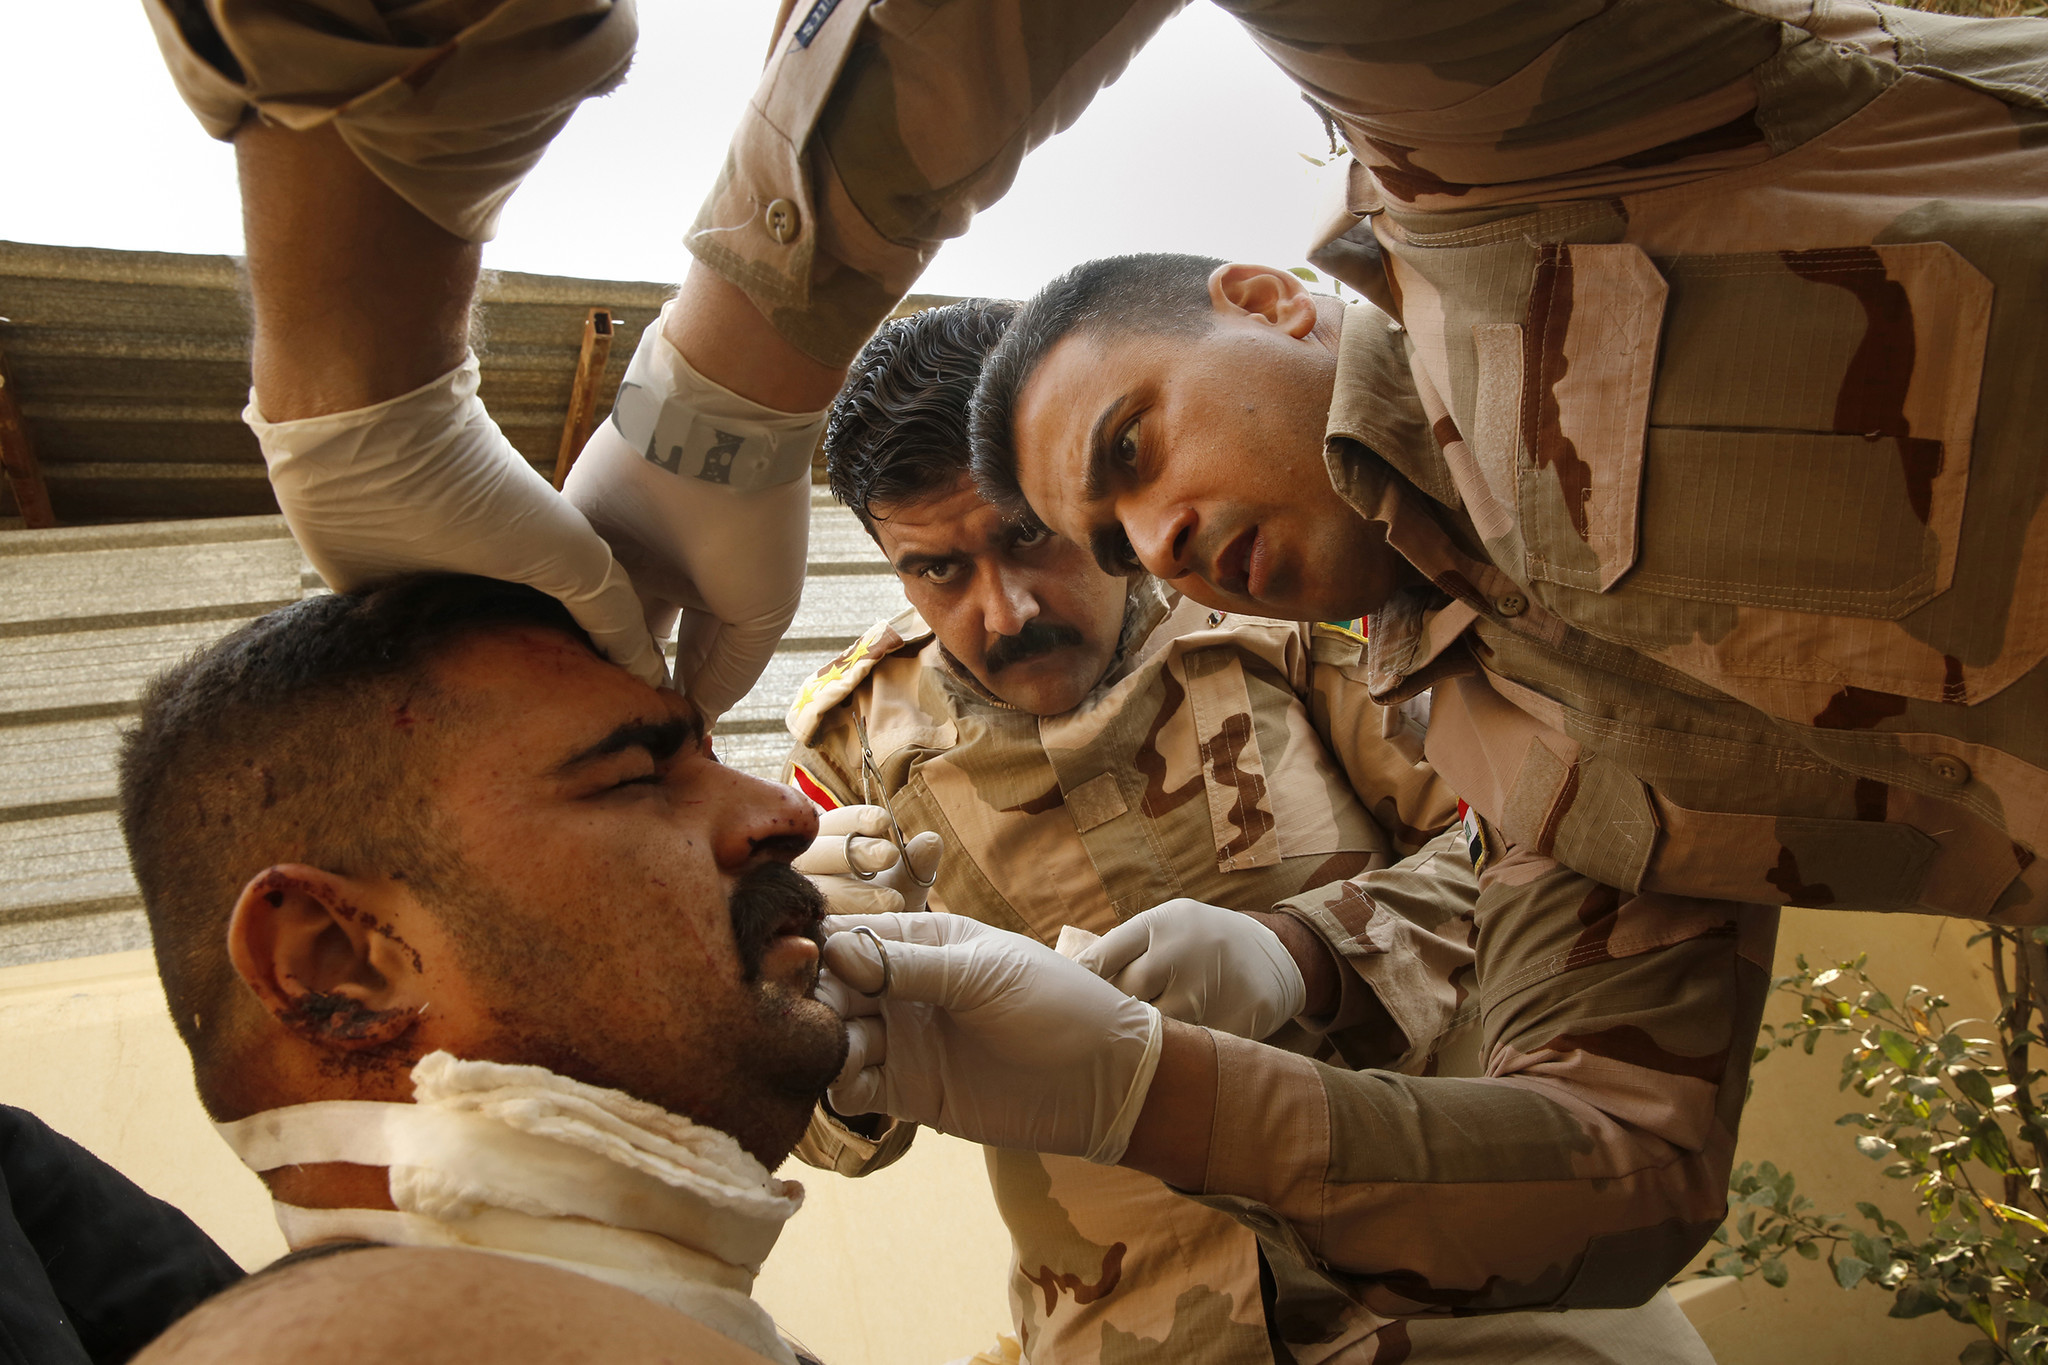 Capt. Osama Fuad Rauf, 33, center, and Maj. Mohammed Hassan Abdullah, left, 35, treat a soldier who was wounded in the fight against Islamic State near Mosul.